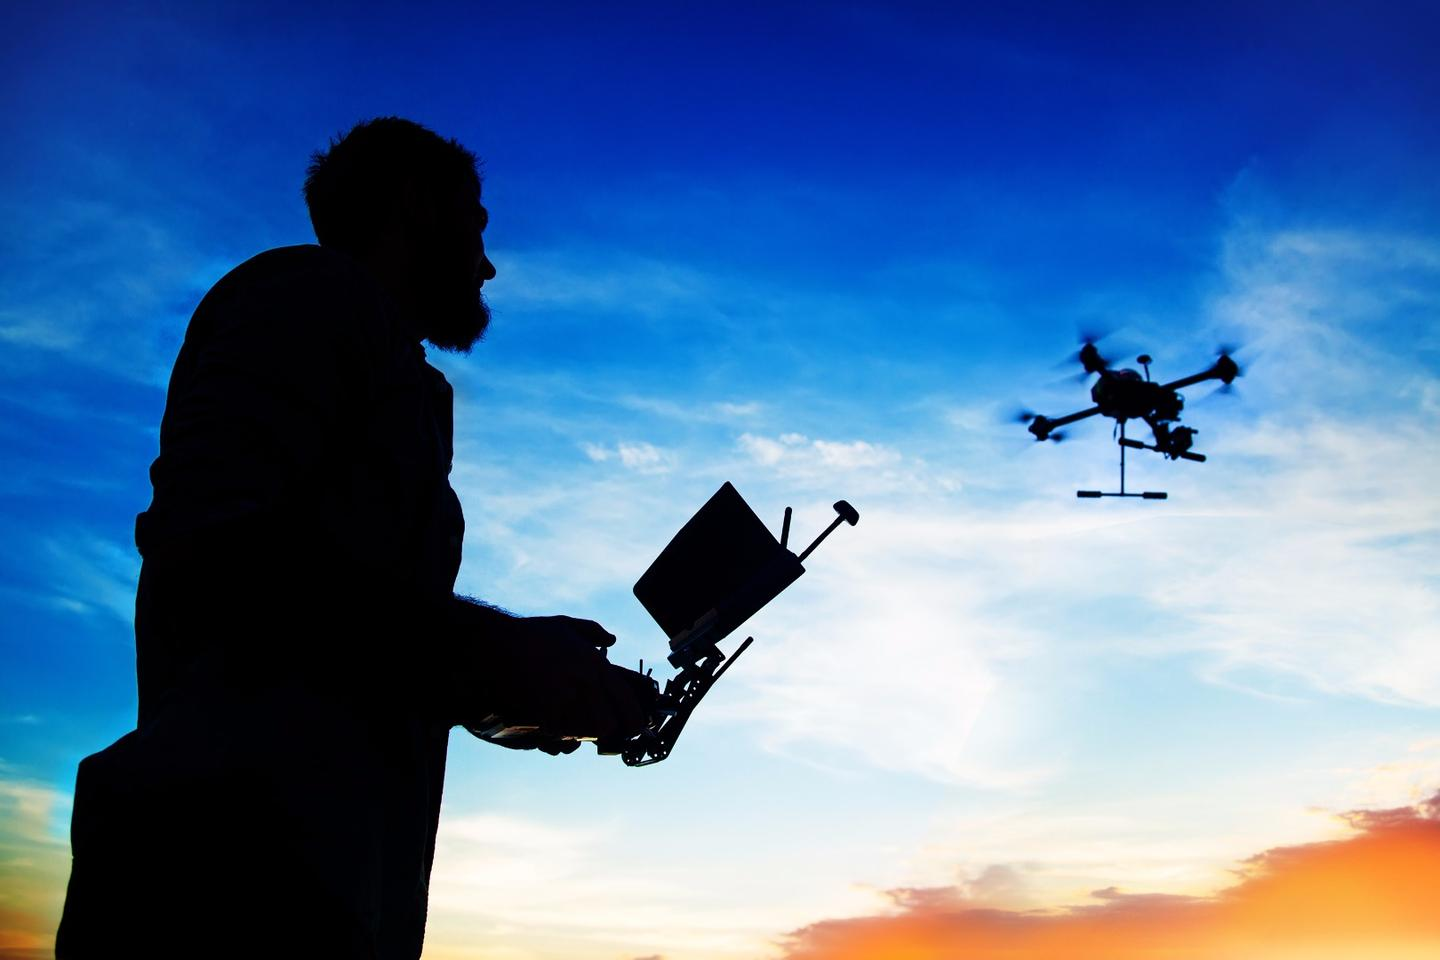 The mandatory registration applies only to hobbyist drones